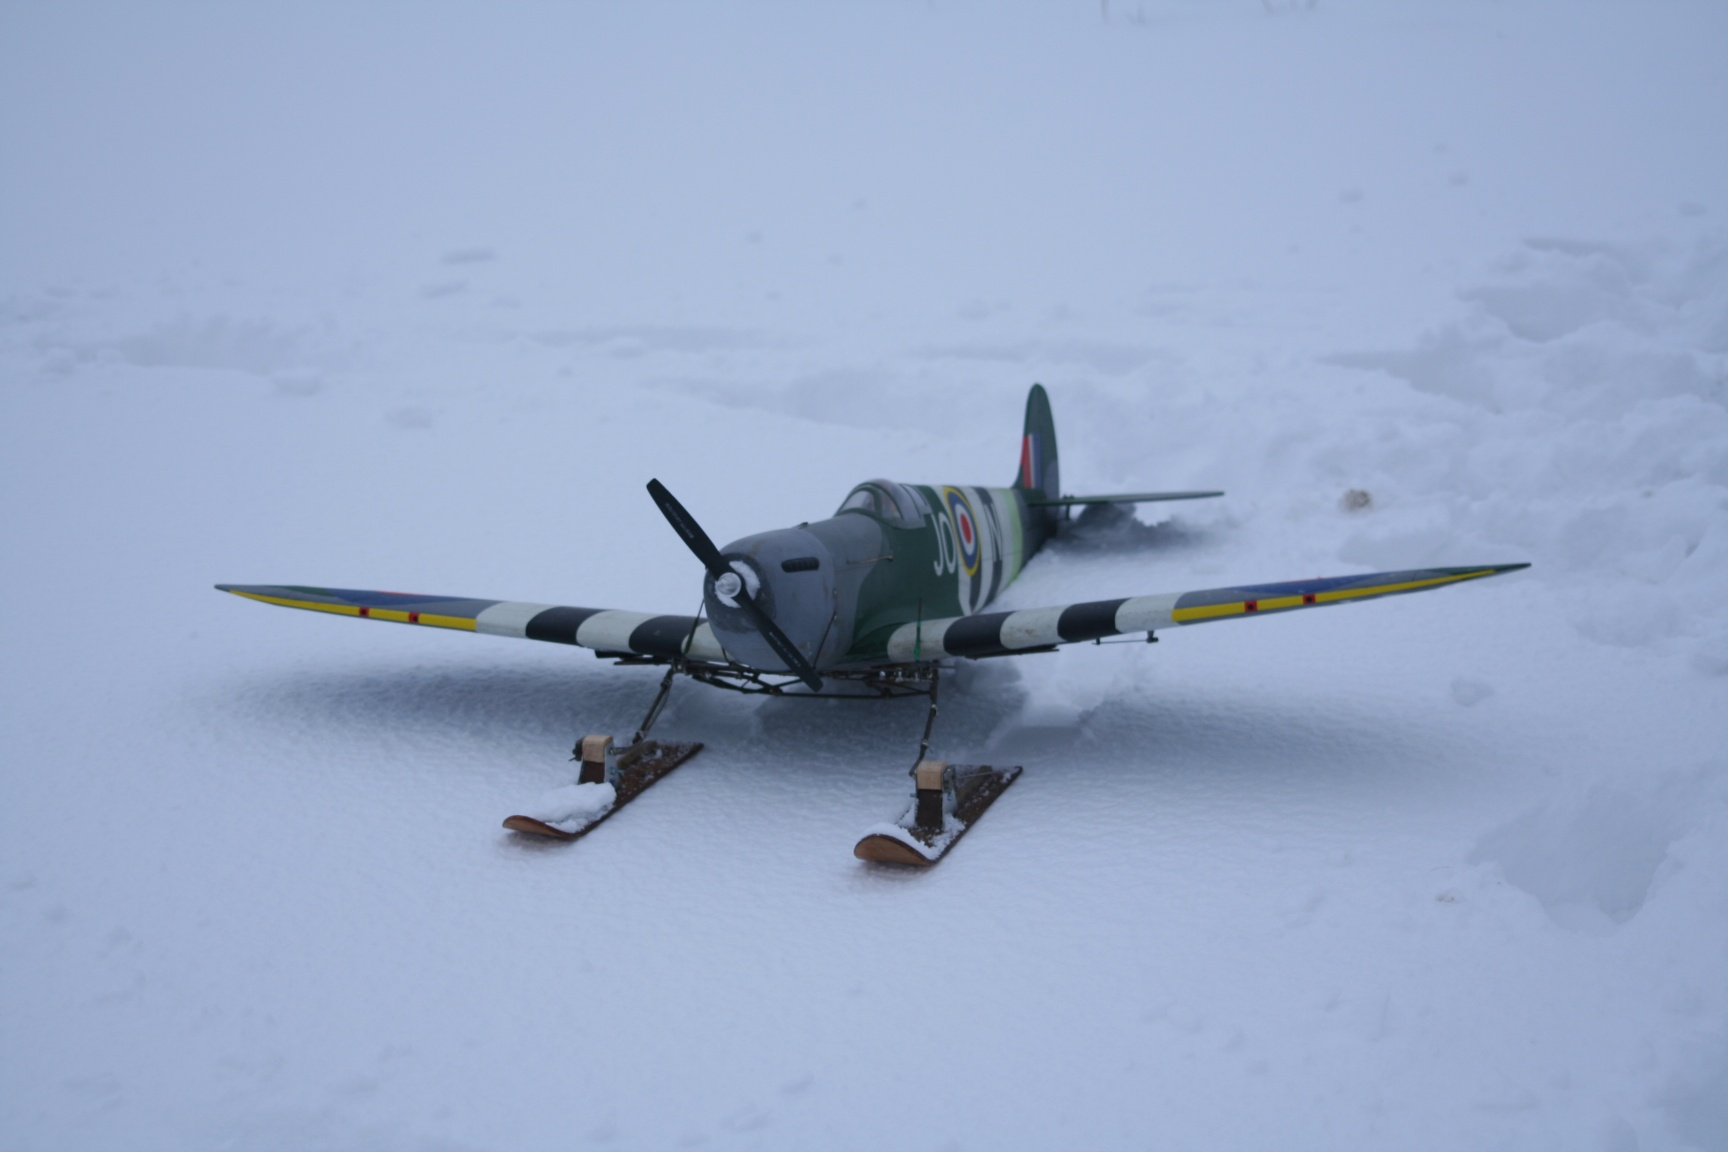 Spitfire on Skis Front View